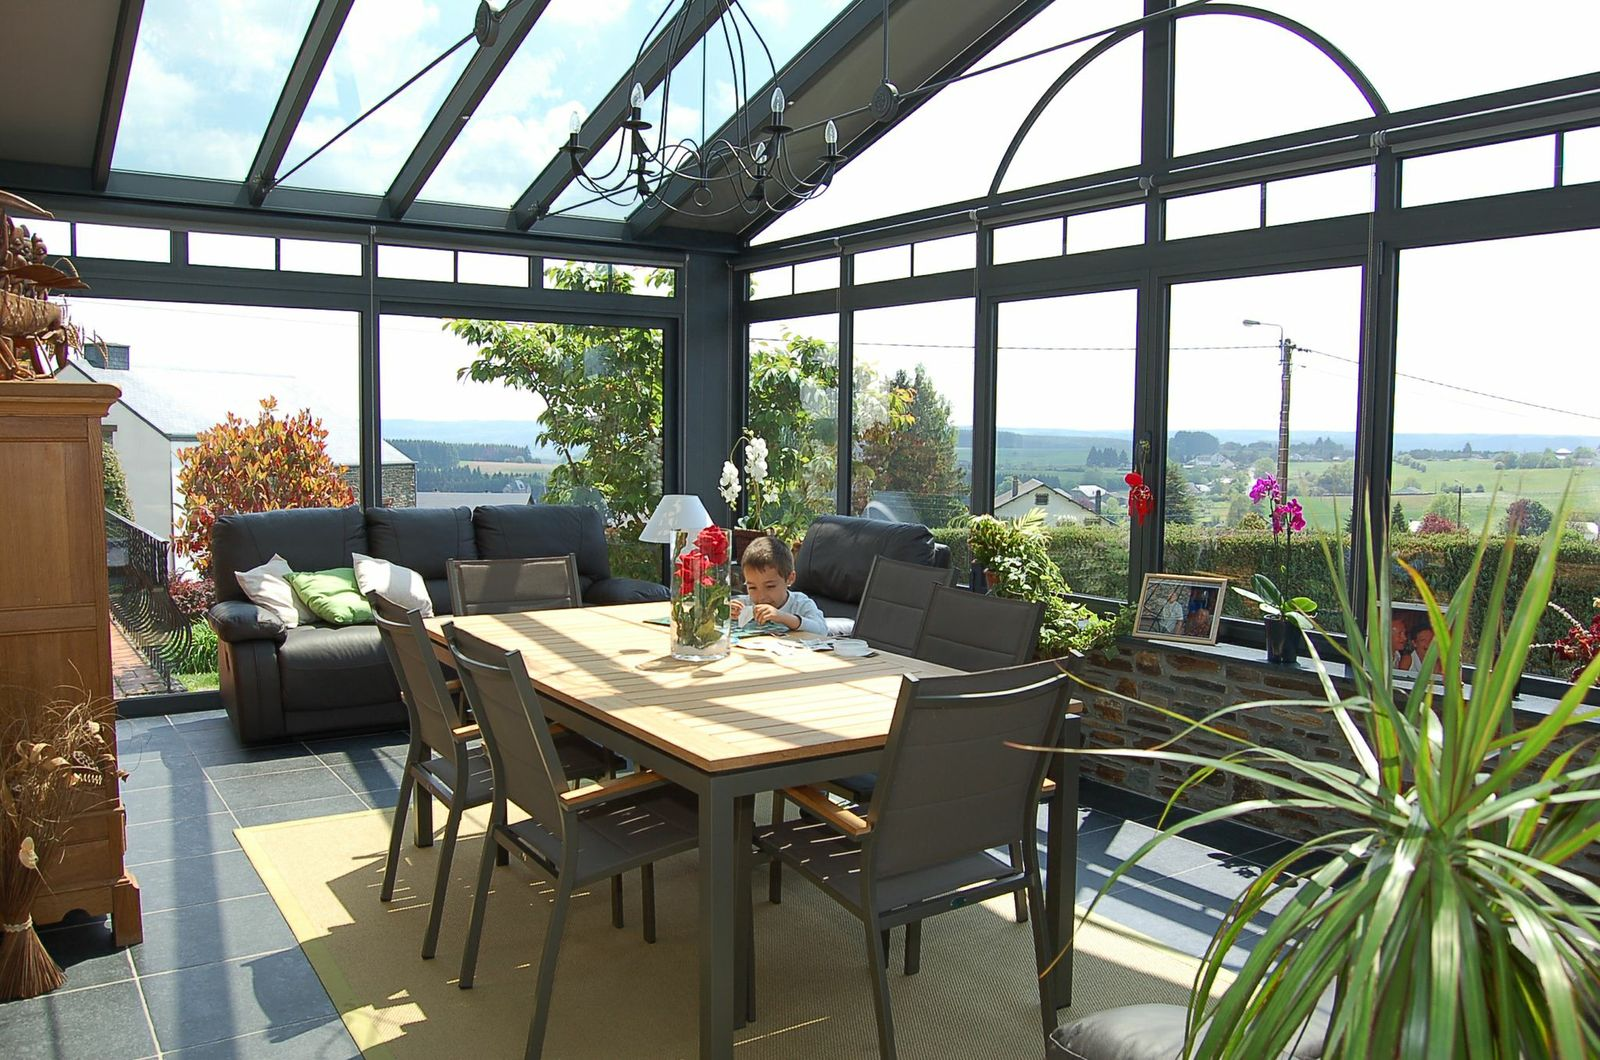 conservatory decor ideas